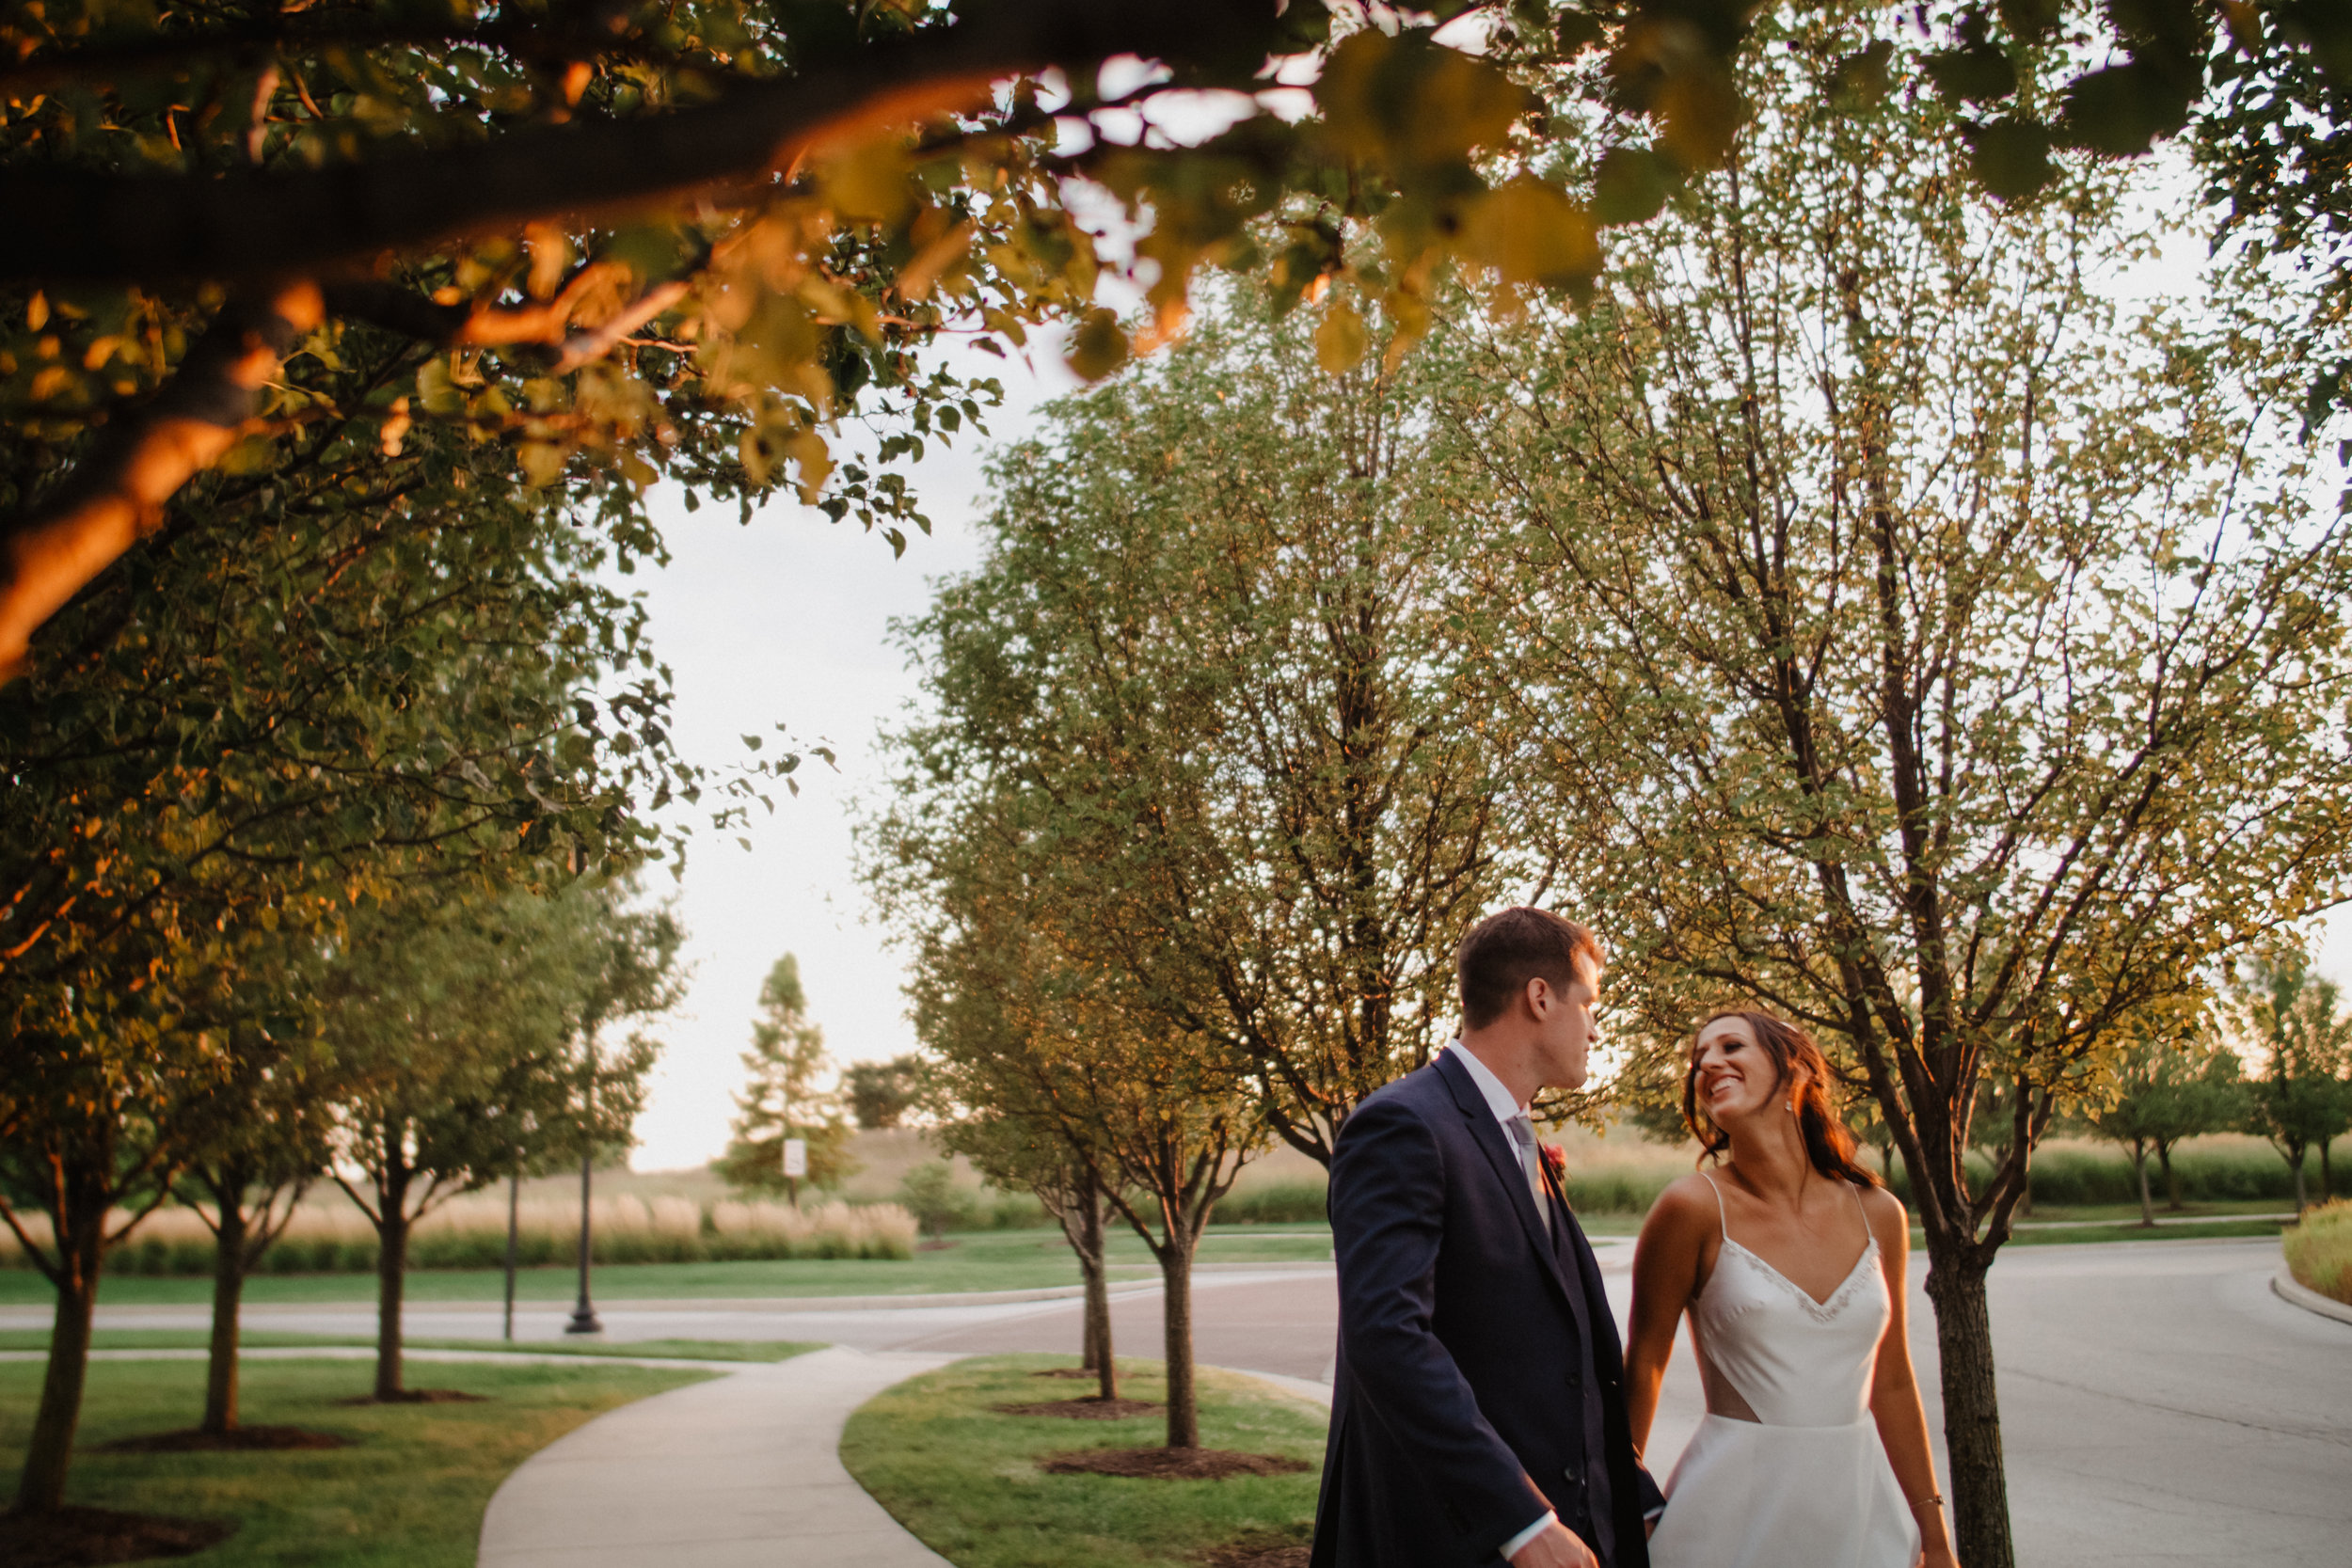 Casey-Regan-Toledo-Wedding-Sunset-01